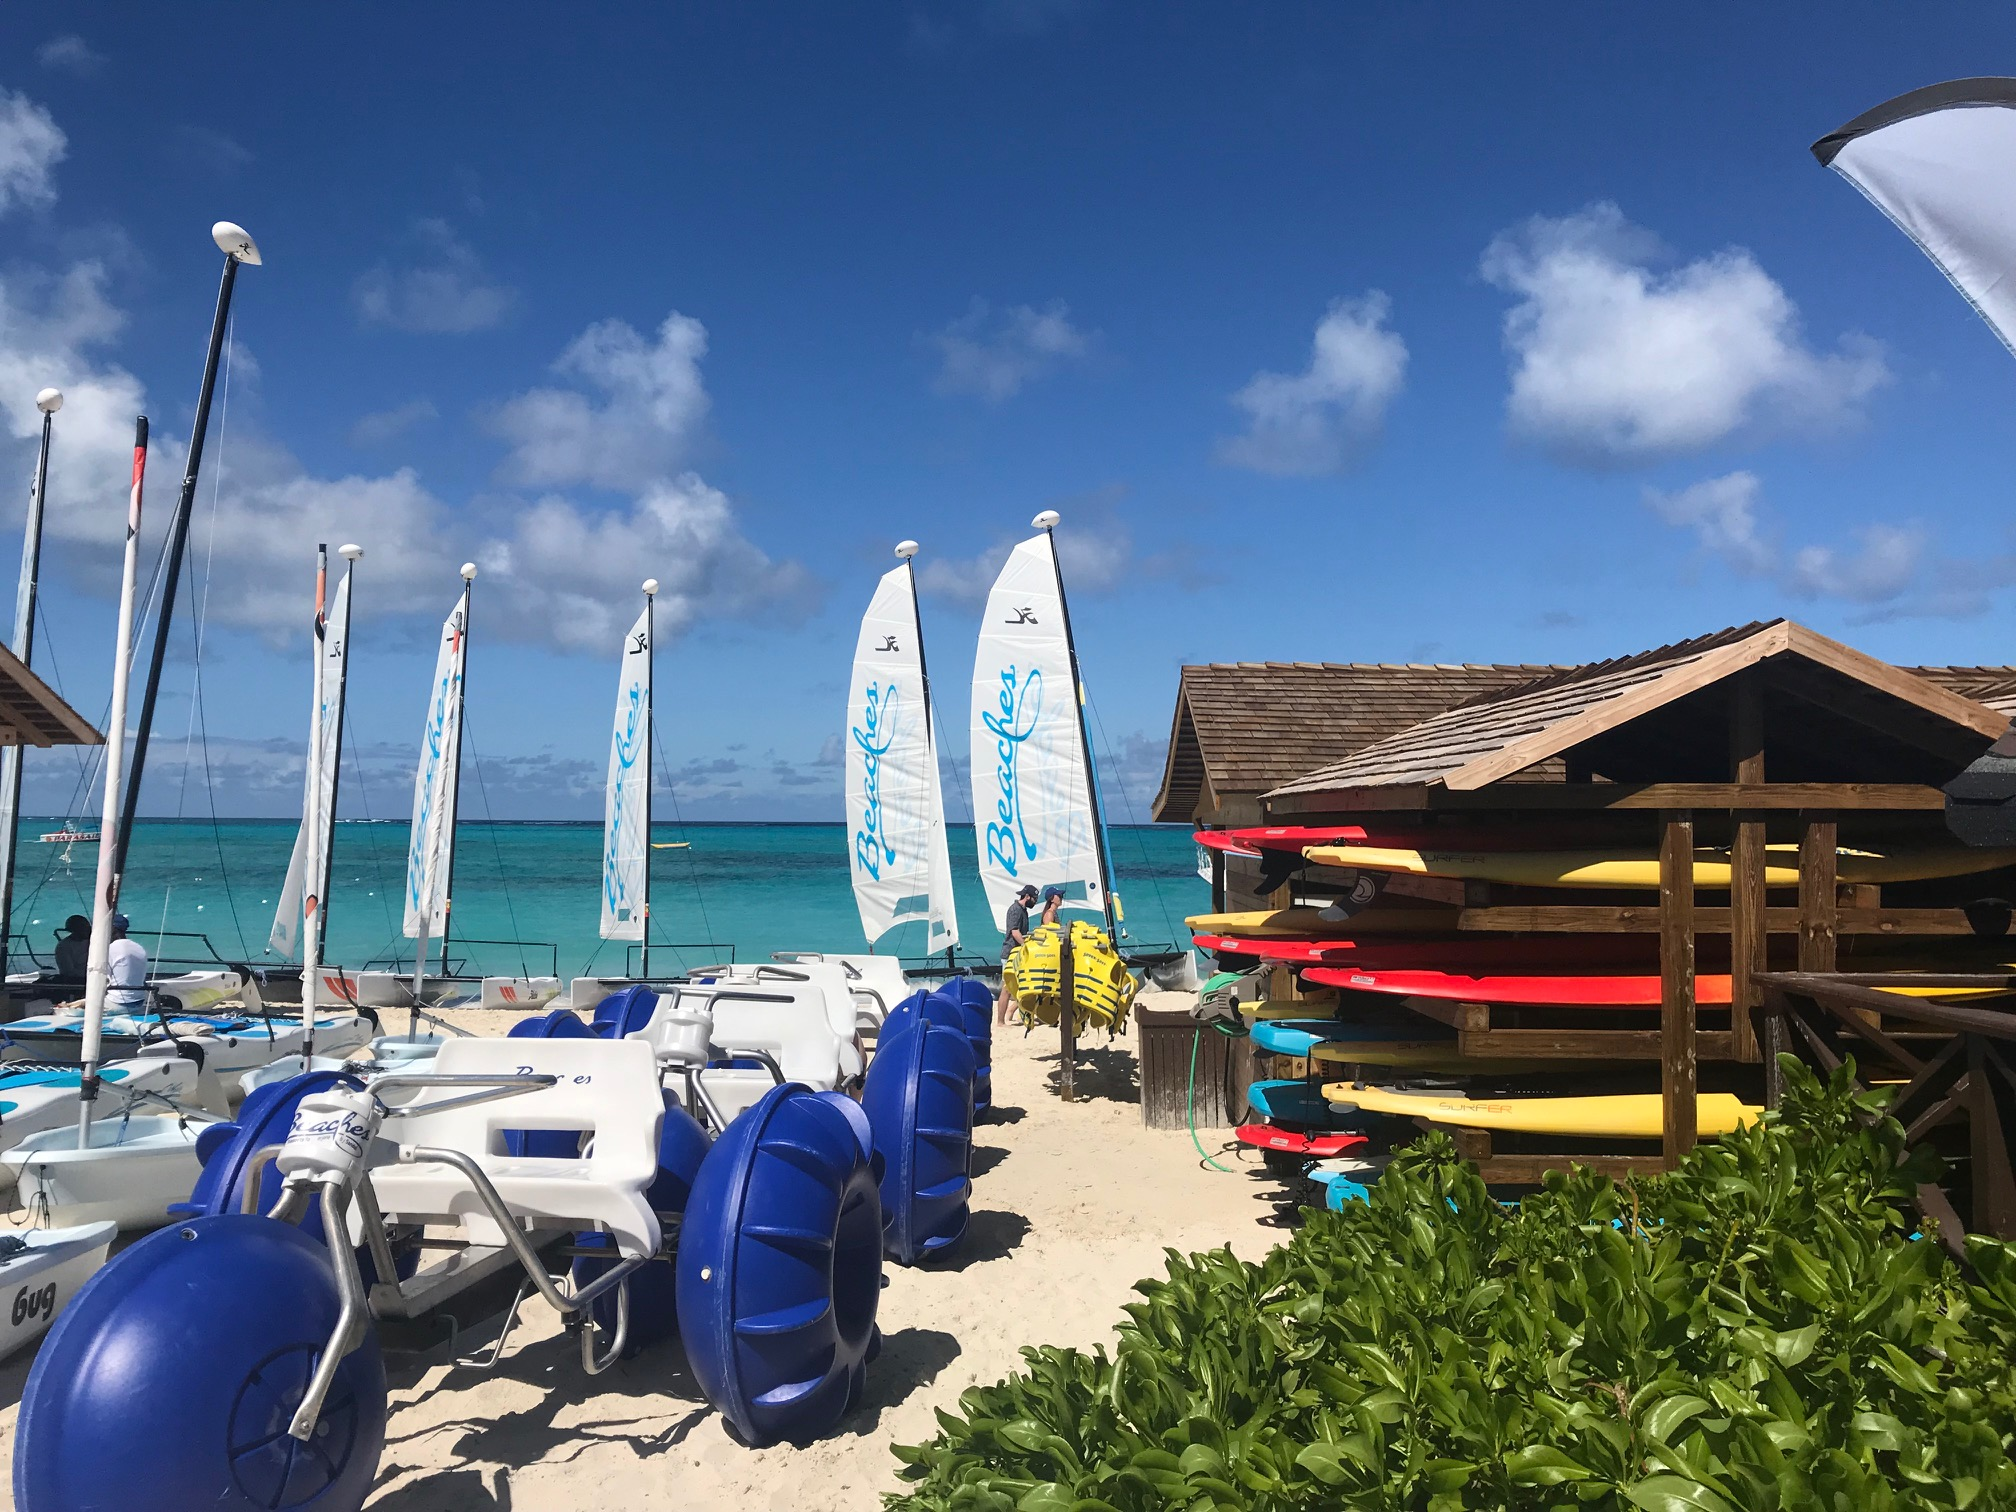 The wealth of water-sports offerings is one of the many reasons I'm now a Beaches believer. Photos by Heather Mundt.